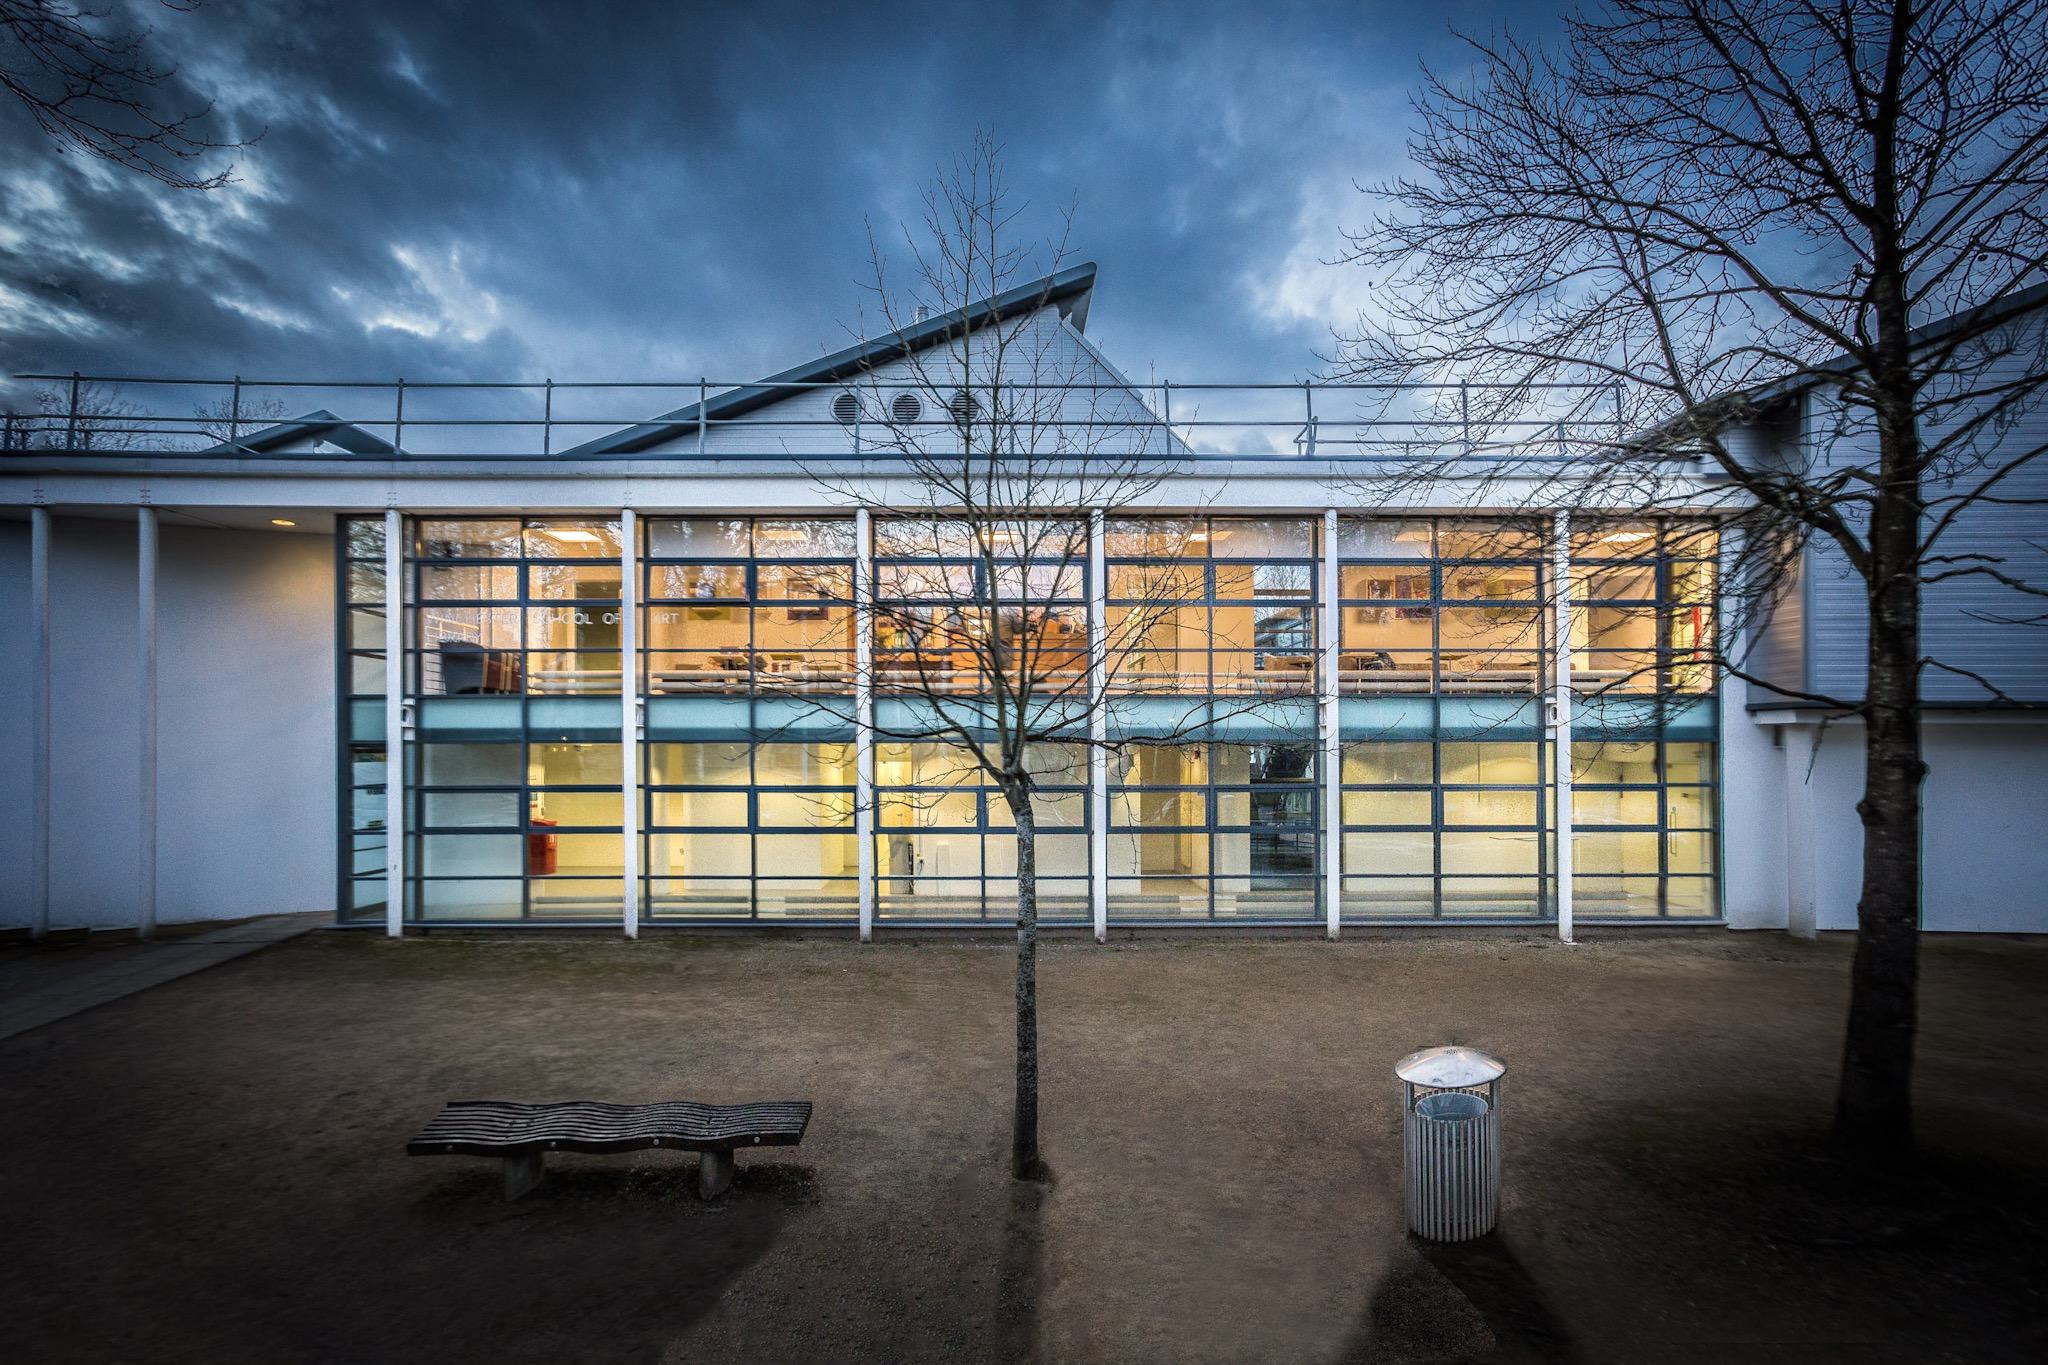 New entrance to the Winchester School of Art Library by Rick McEvoy Architectural Photographer in Hampshire